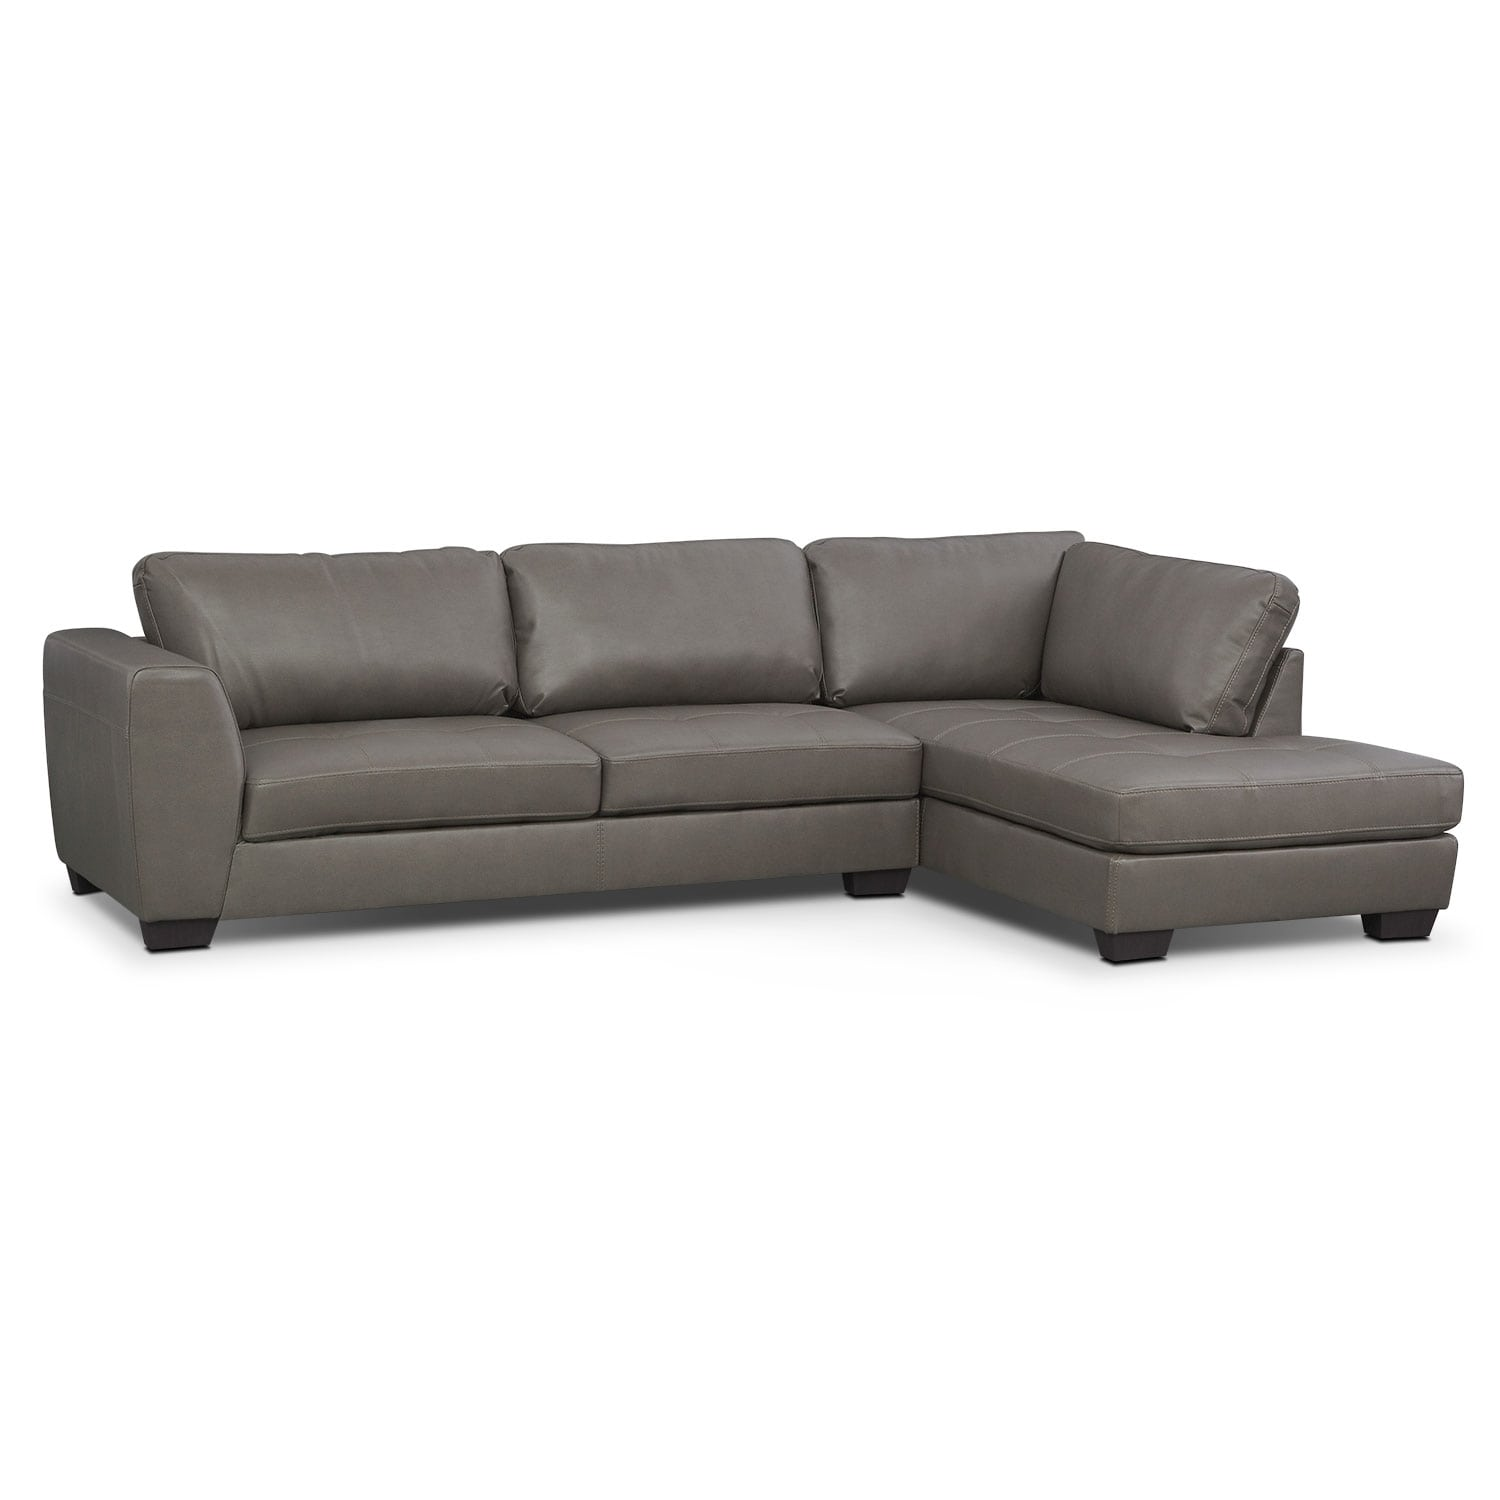 Ciera IV 2 Pc. Sectional (Reverse)